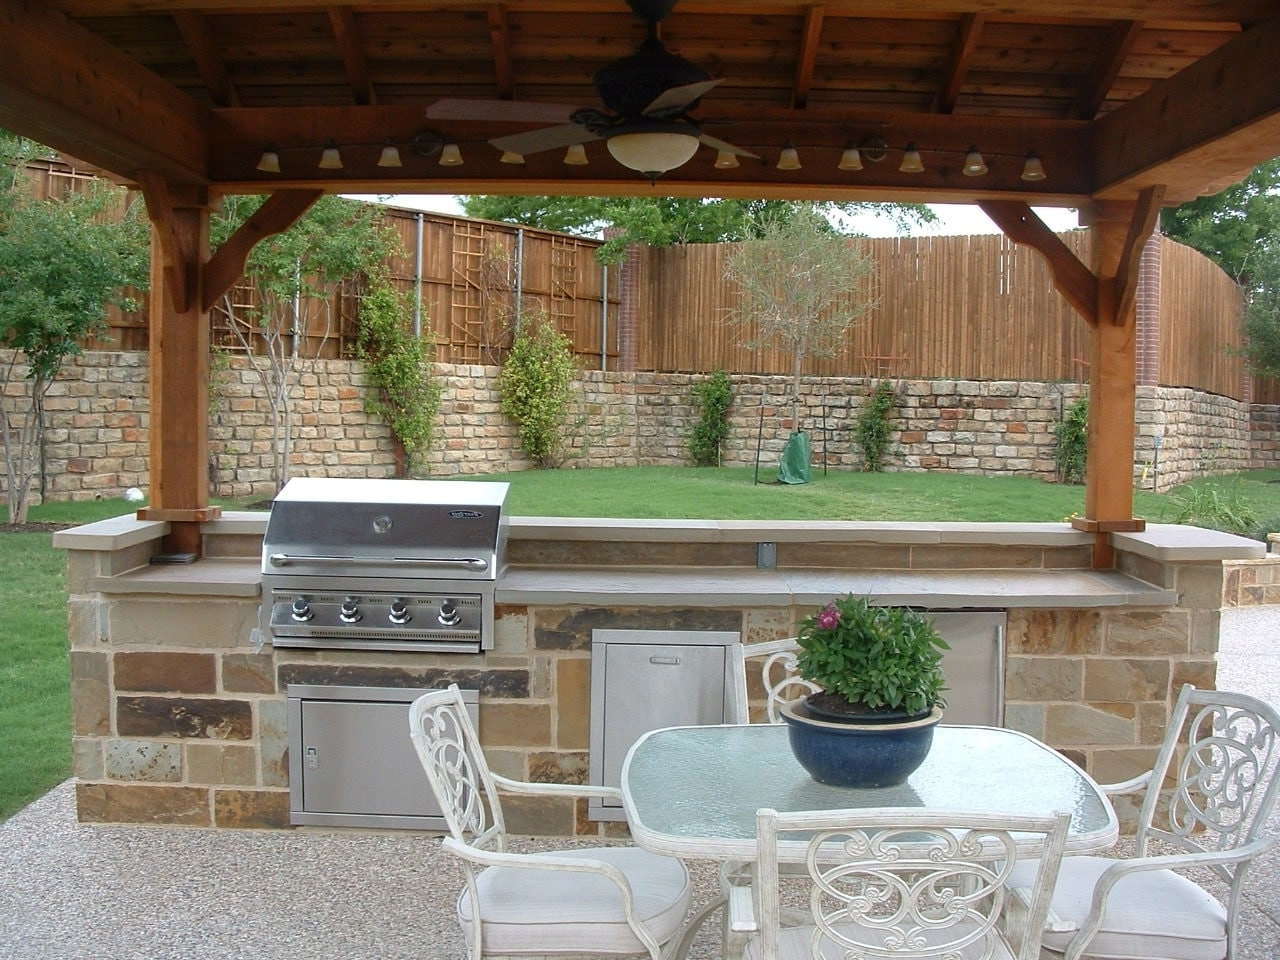 Outdoor Ceiling Fans For Pergola Intended For Well Known Modern Outdoor Ceiling Fan With Light — Sherizampelli Landscape (Gallery 17 of 20)